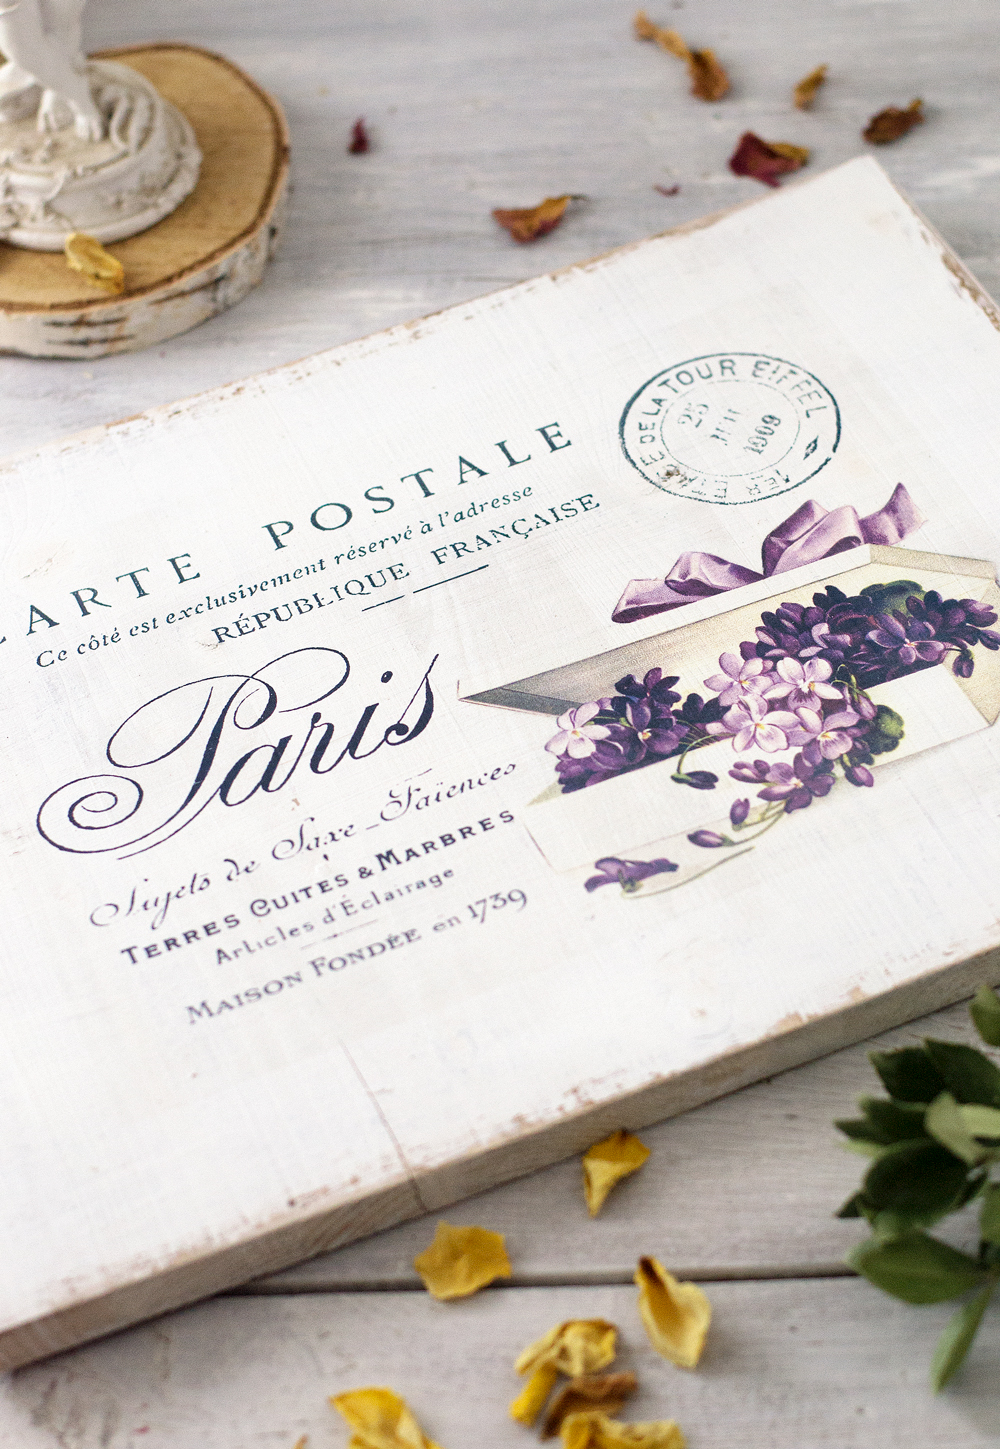 DIY Shabby French postcard sign with fancy violets project & free printable!